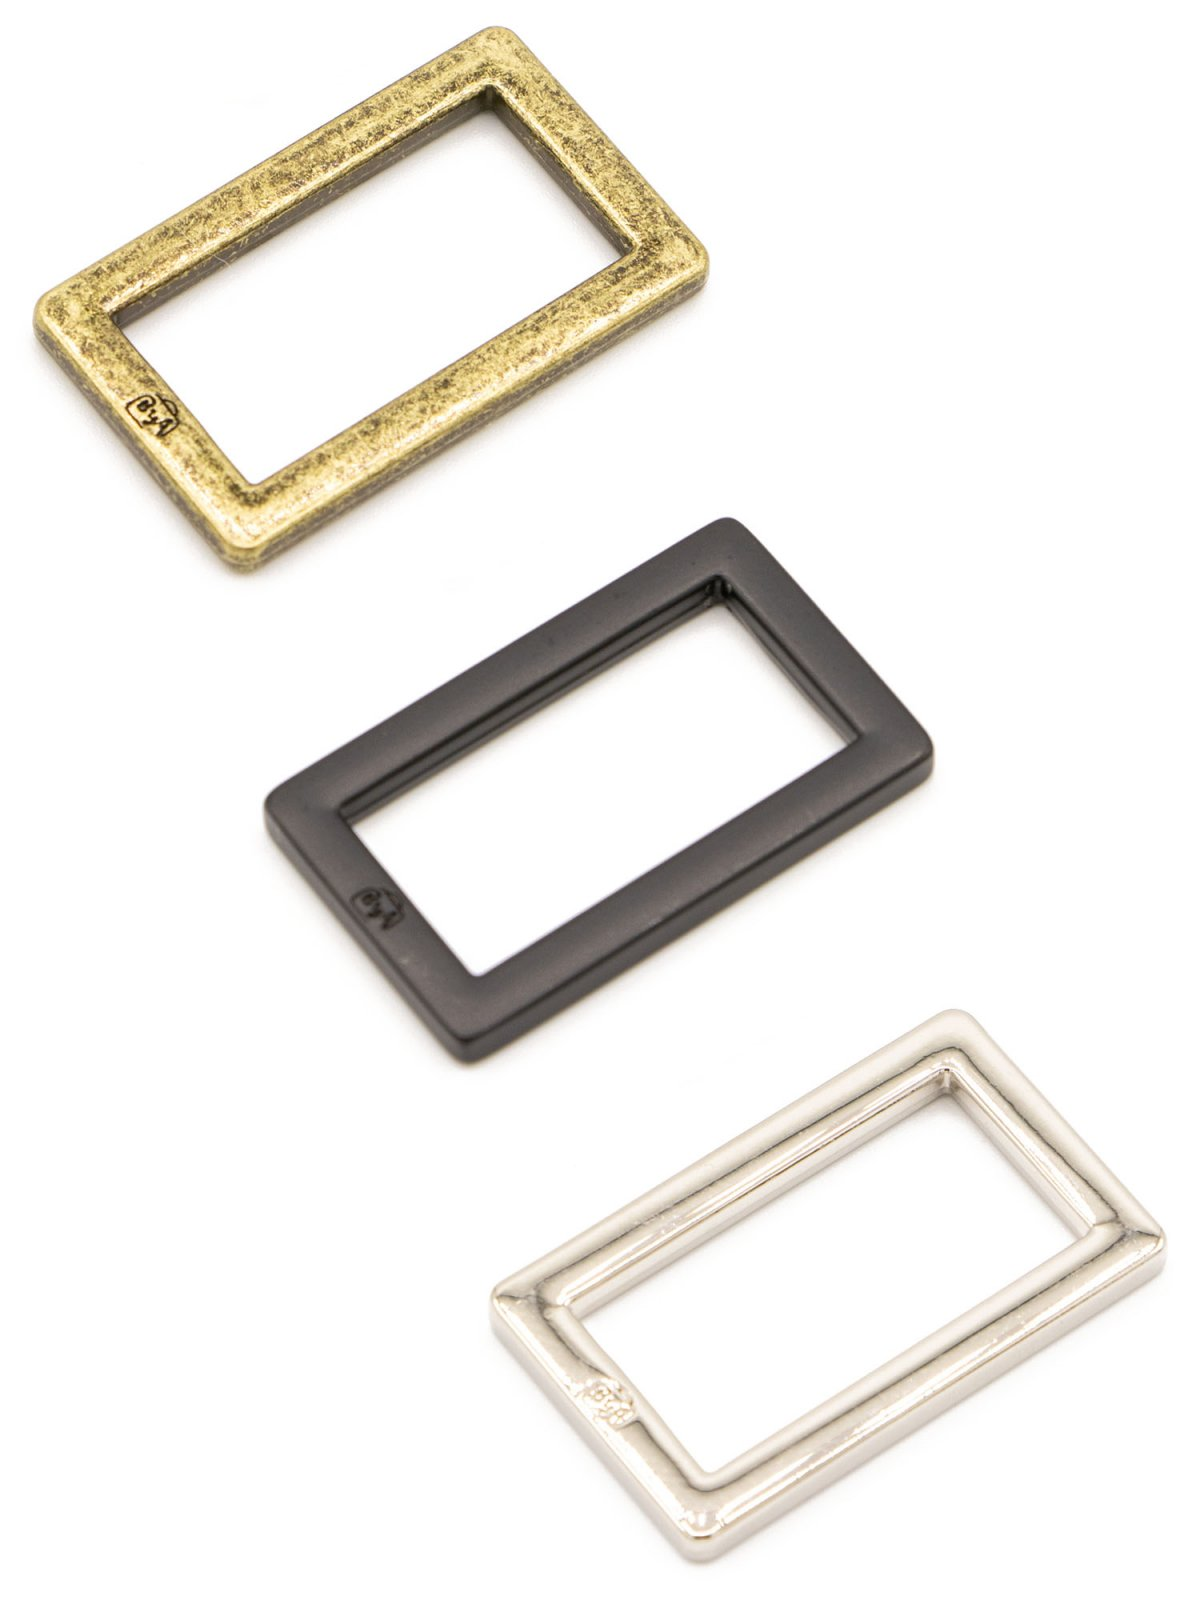 ByAnnie - Purse Parts - 1 Rectangle Ring Flat - Nickel